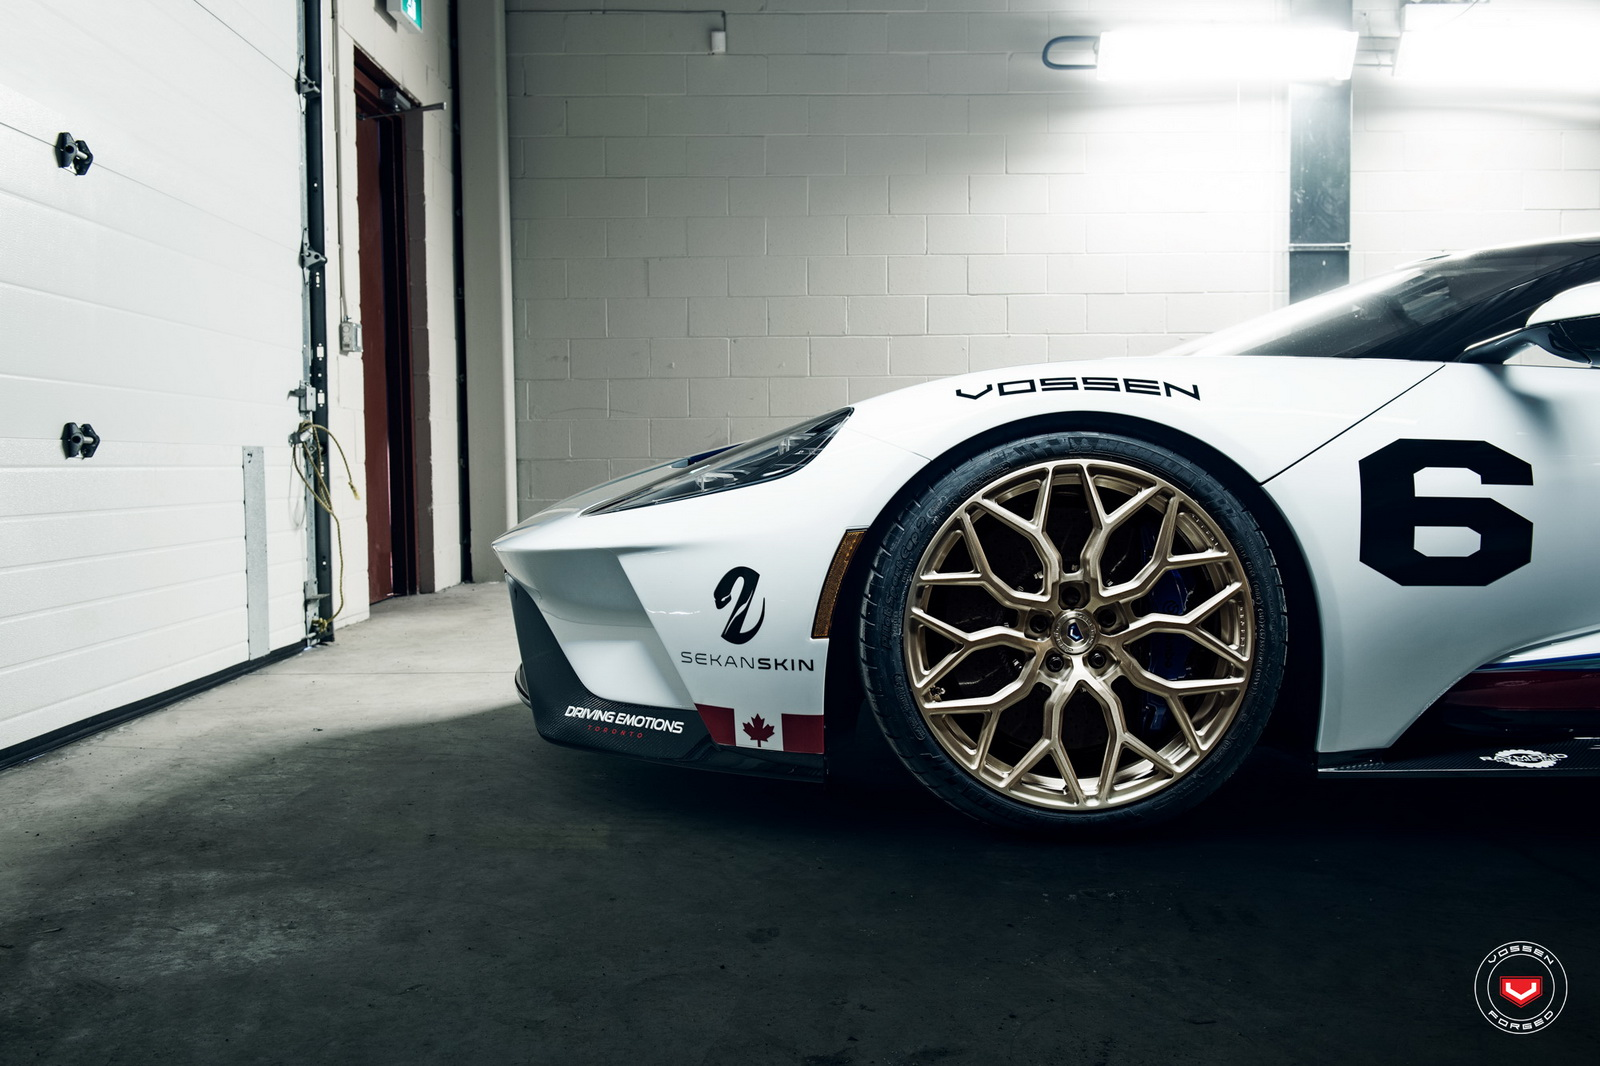 ford-gt-martini-livery-vossen-wheels-5